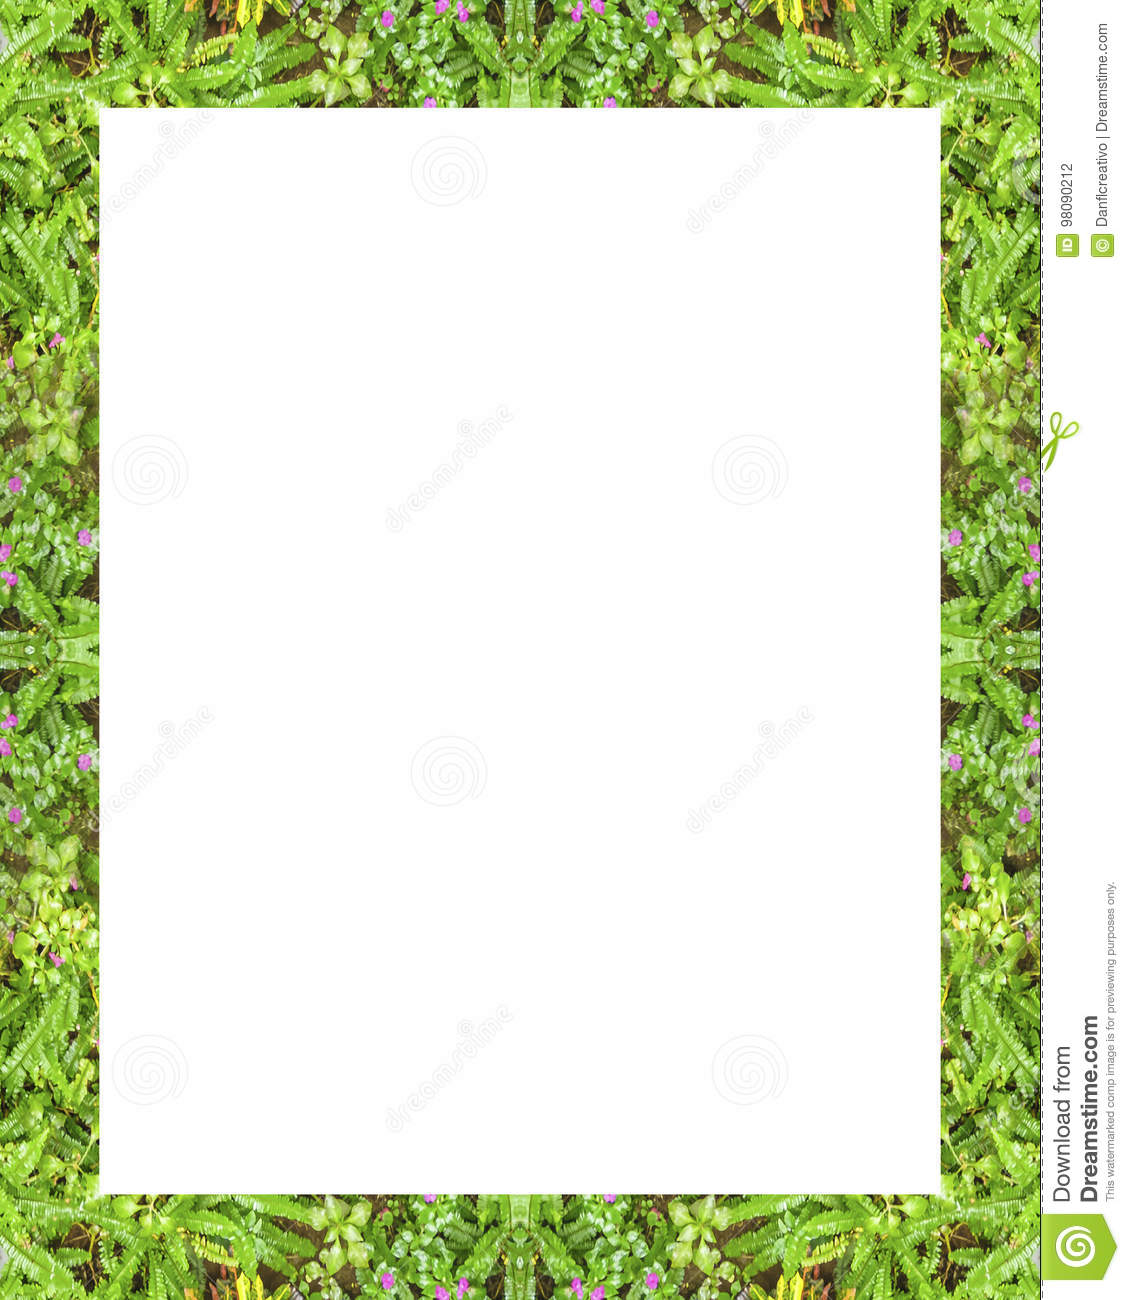 white frame with nature borders stock photo image of leaves stationary 98090212 https www dreamstime com stock photo white frame nature borders background decorated design image98090212